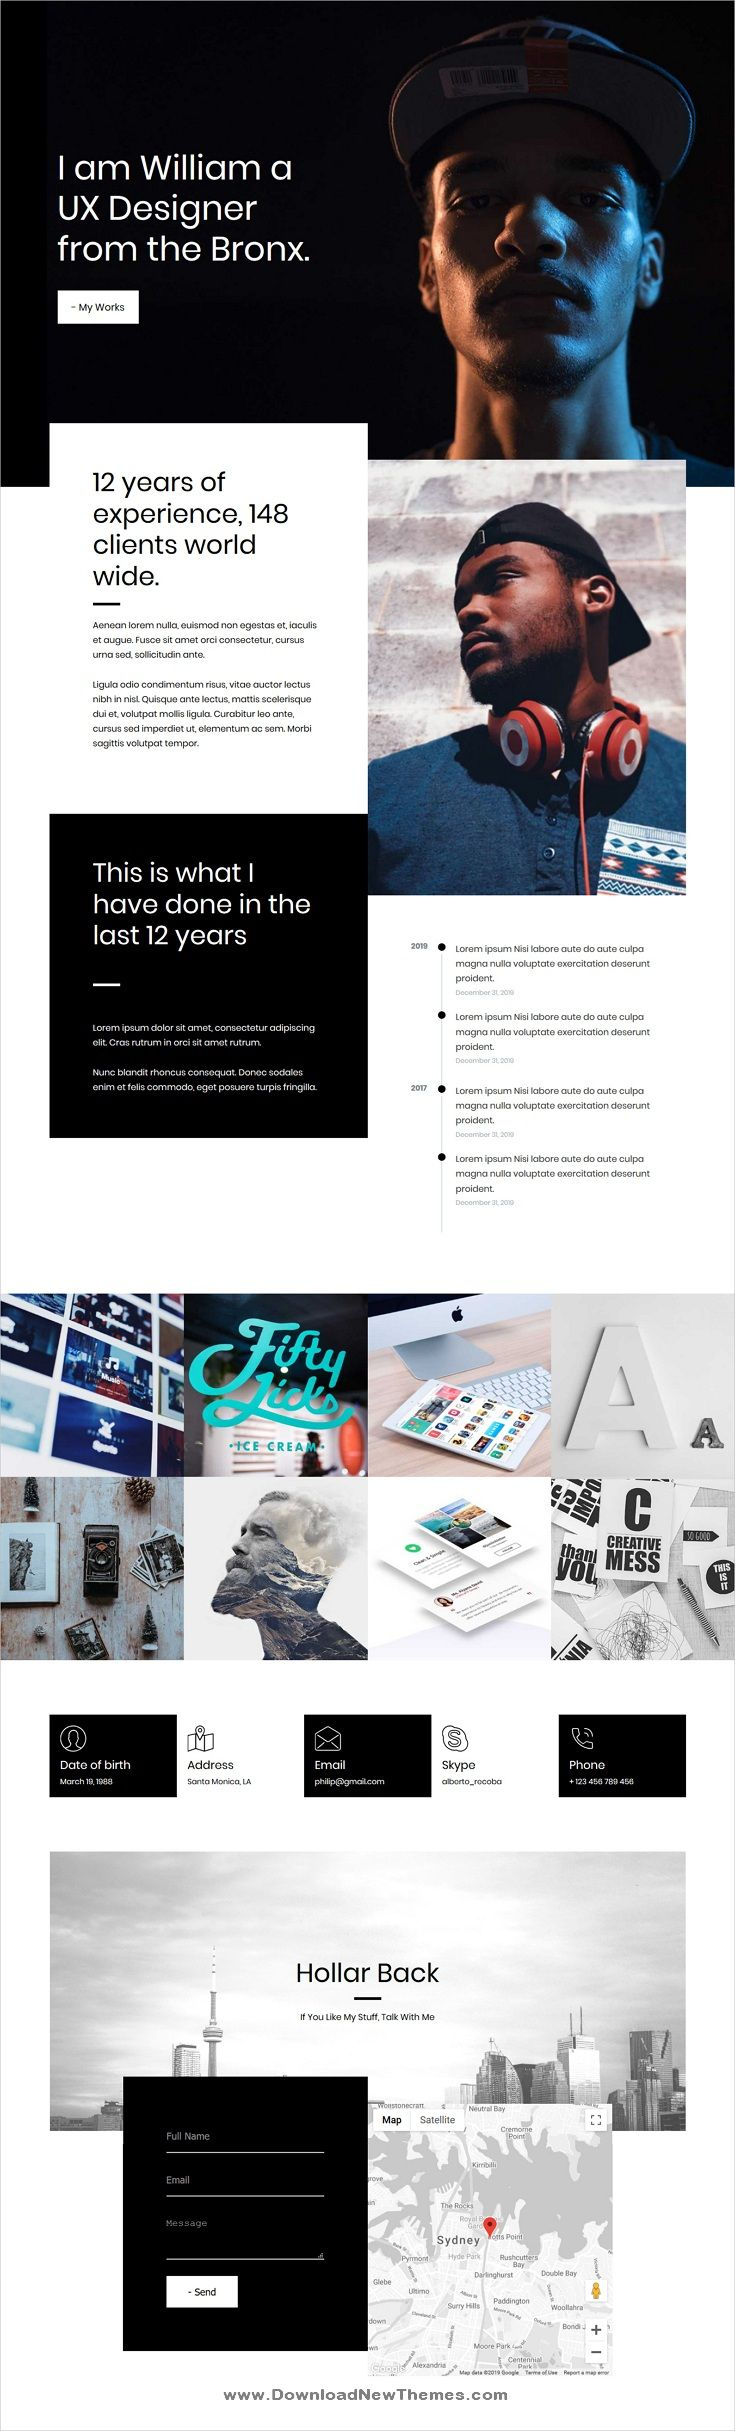 Mebo Is A Clean And Modern Design Responsive Html Template For Creative Resume Cv And Portfolio Showcase Web App Design Web Design App Design Inspiration